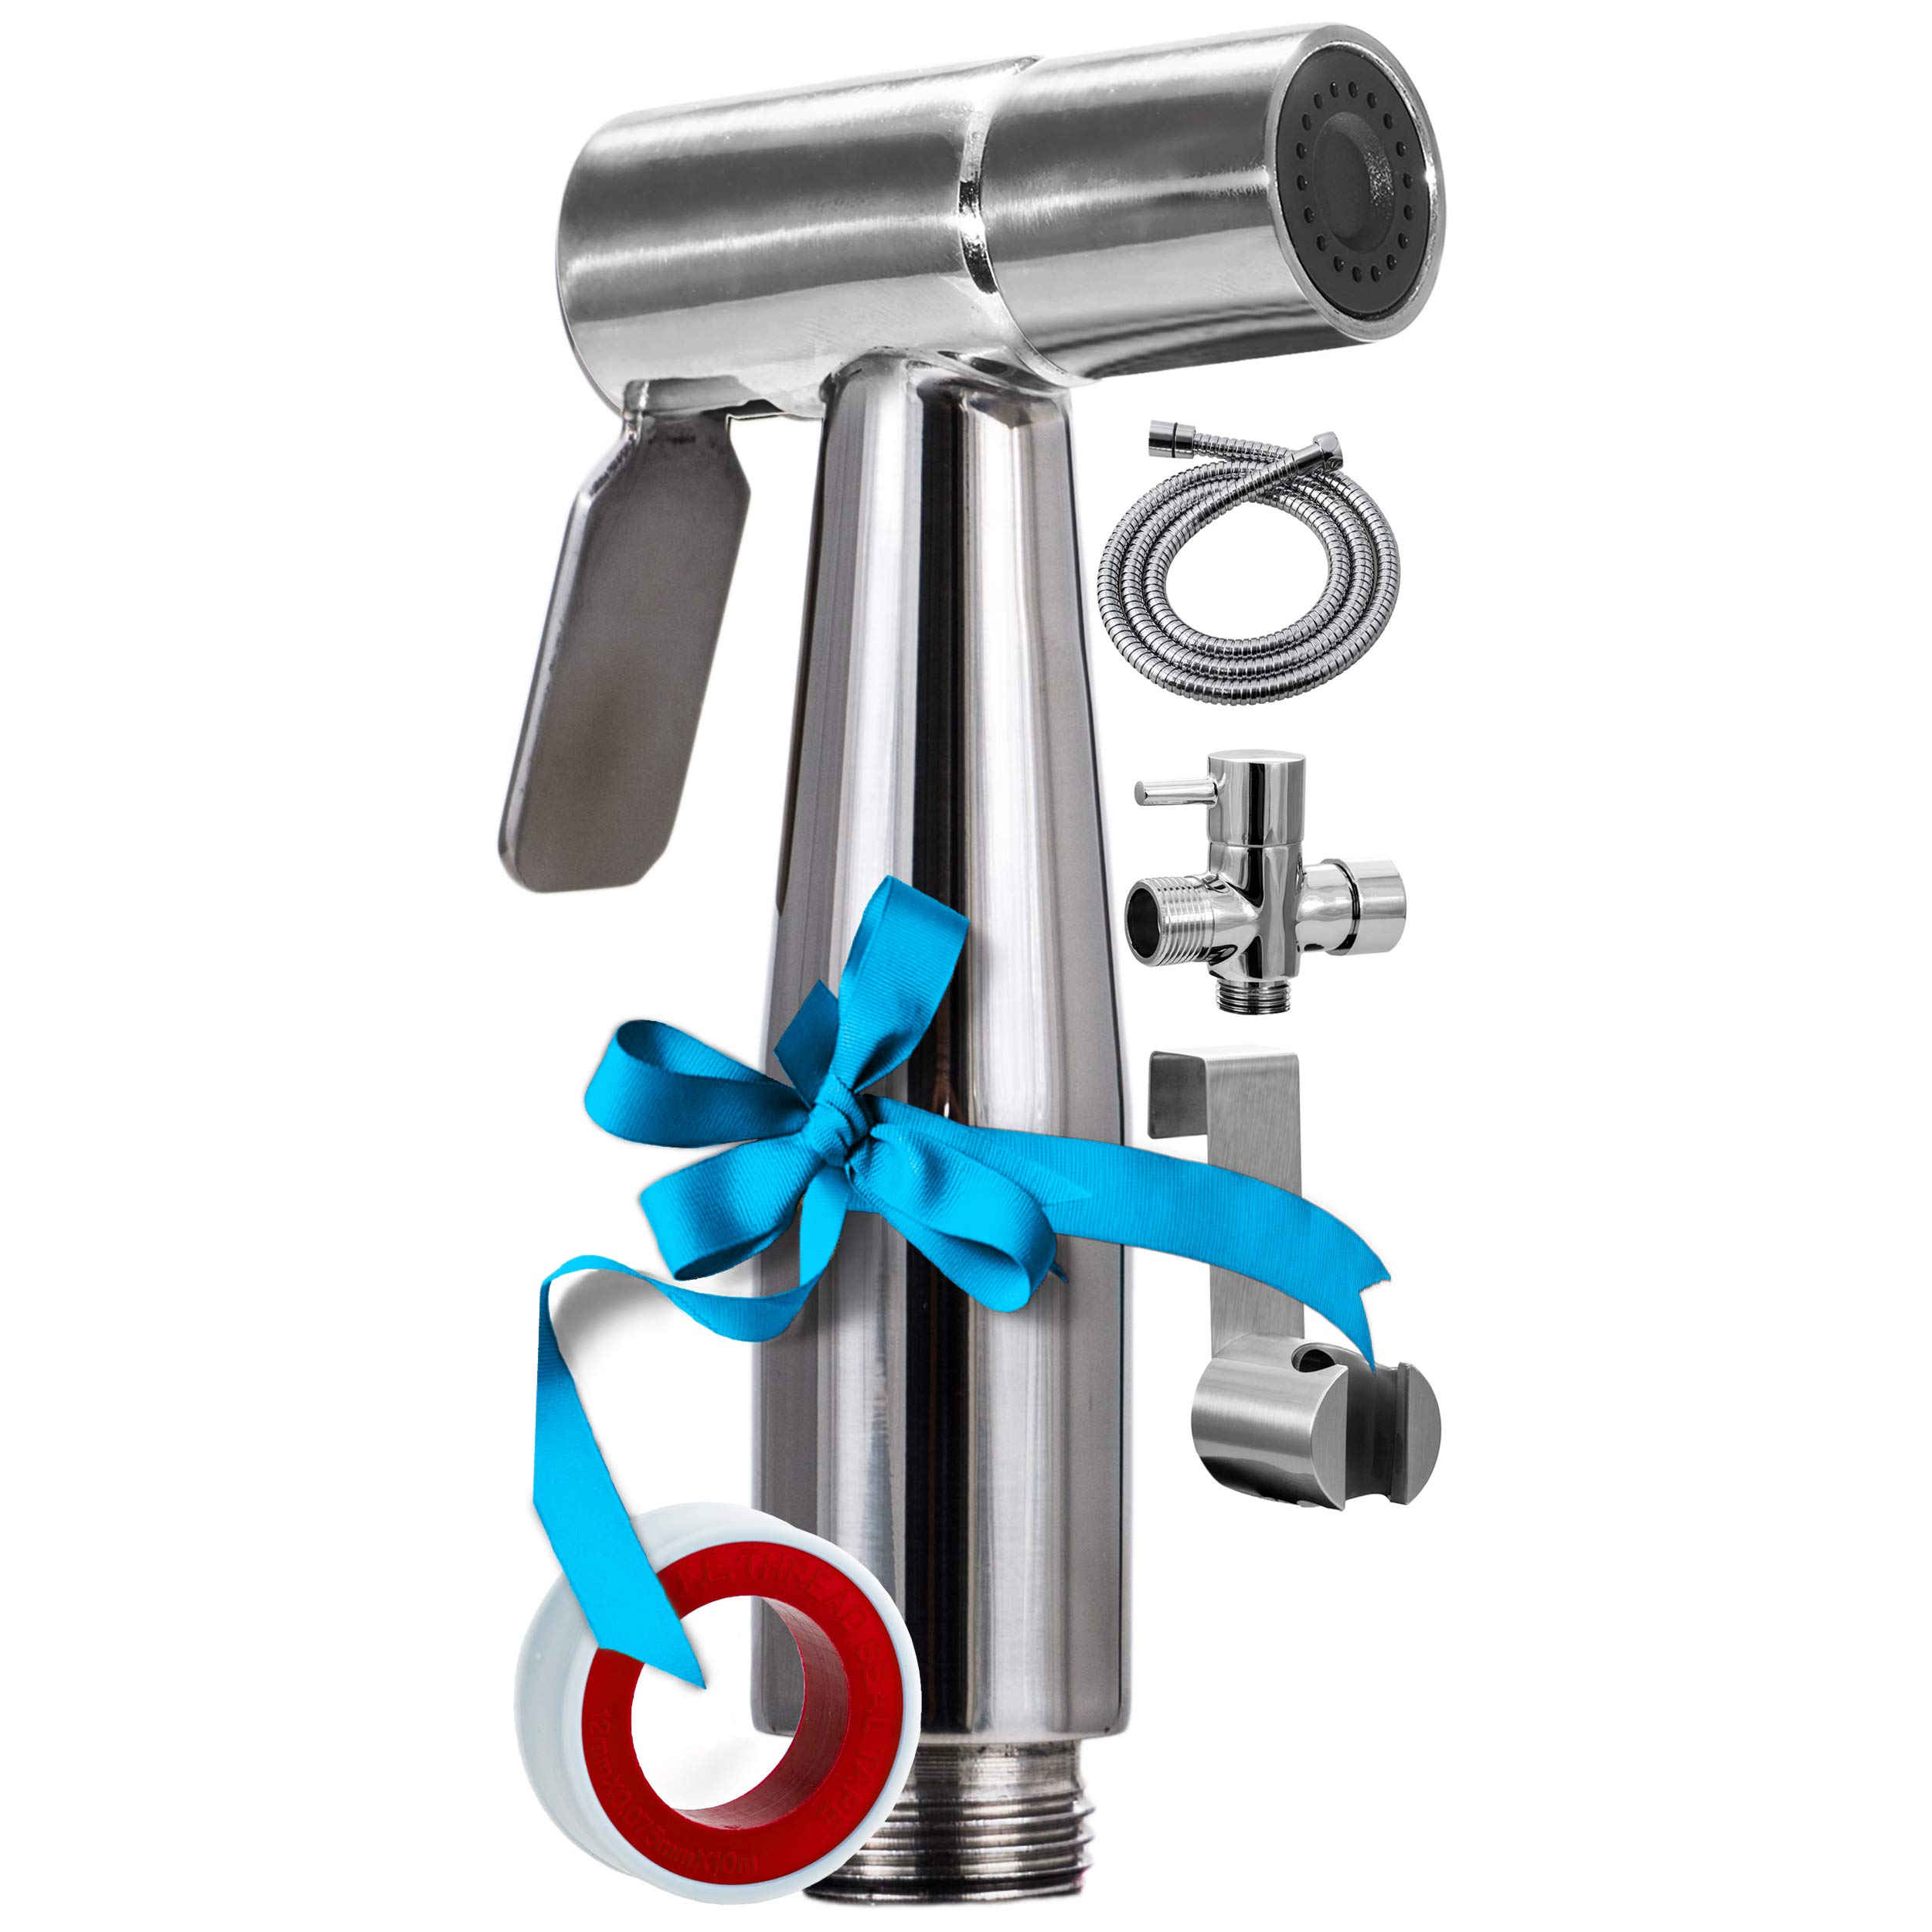 Luxury Handheld Bidet Sprayer-Cloth Diaper Baby Water Shattaf-Personal Hygiene Shower Spray Attachment-59'' Hose-High Pressure/No Leaks-Stainless Steel Brushed Chrome Washer Set for Toilet Bidets